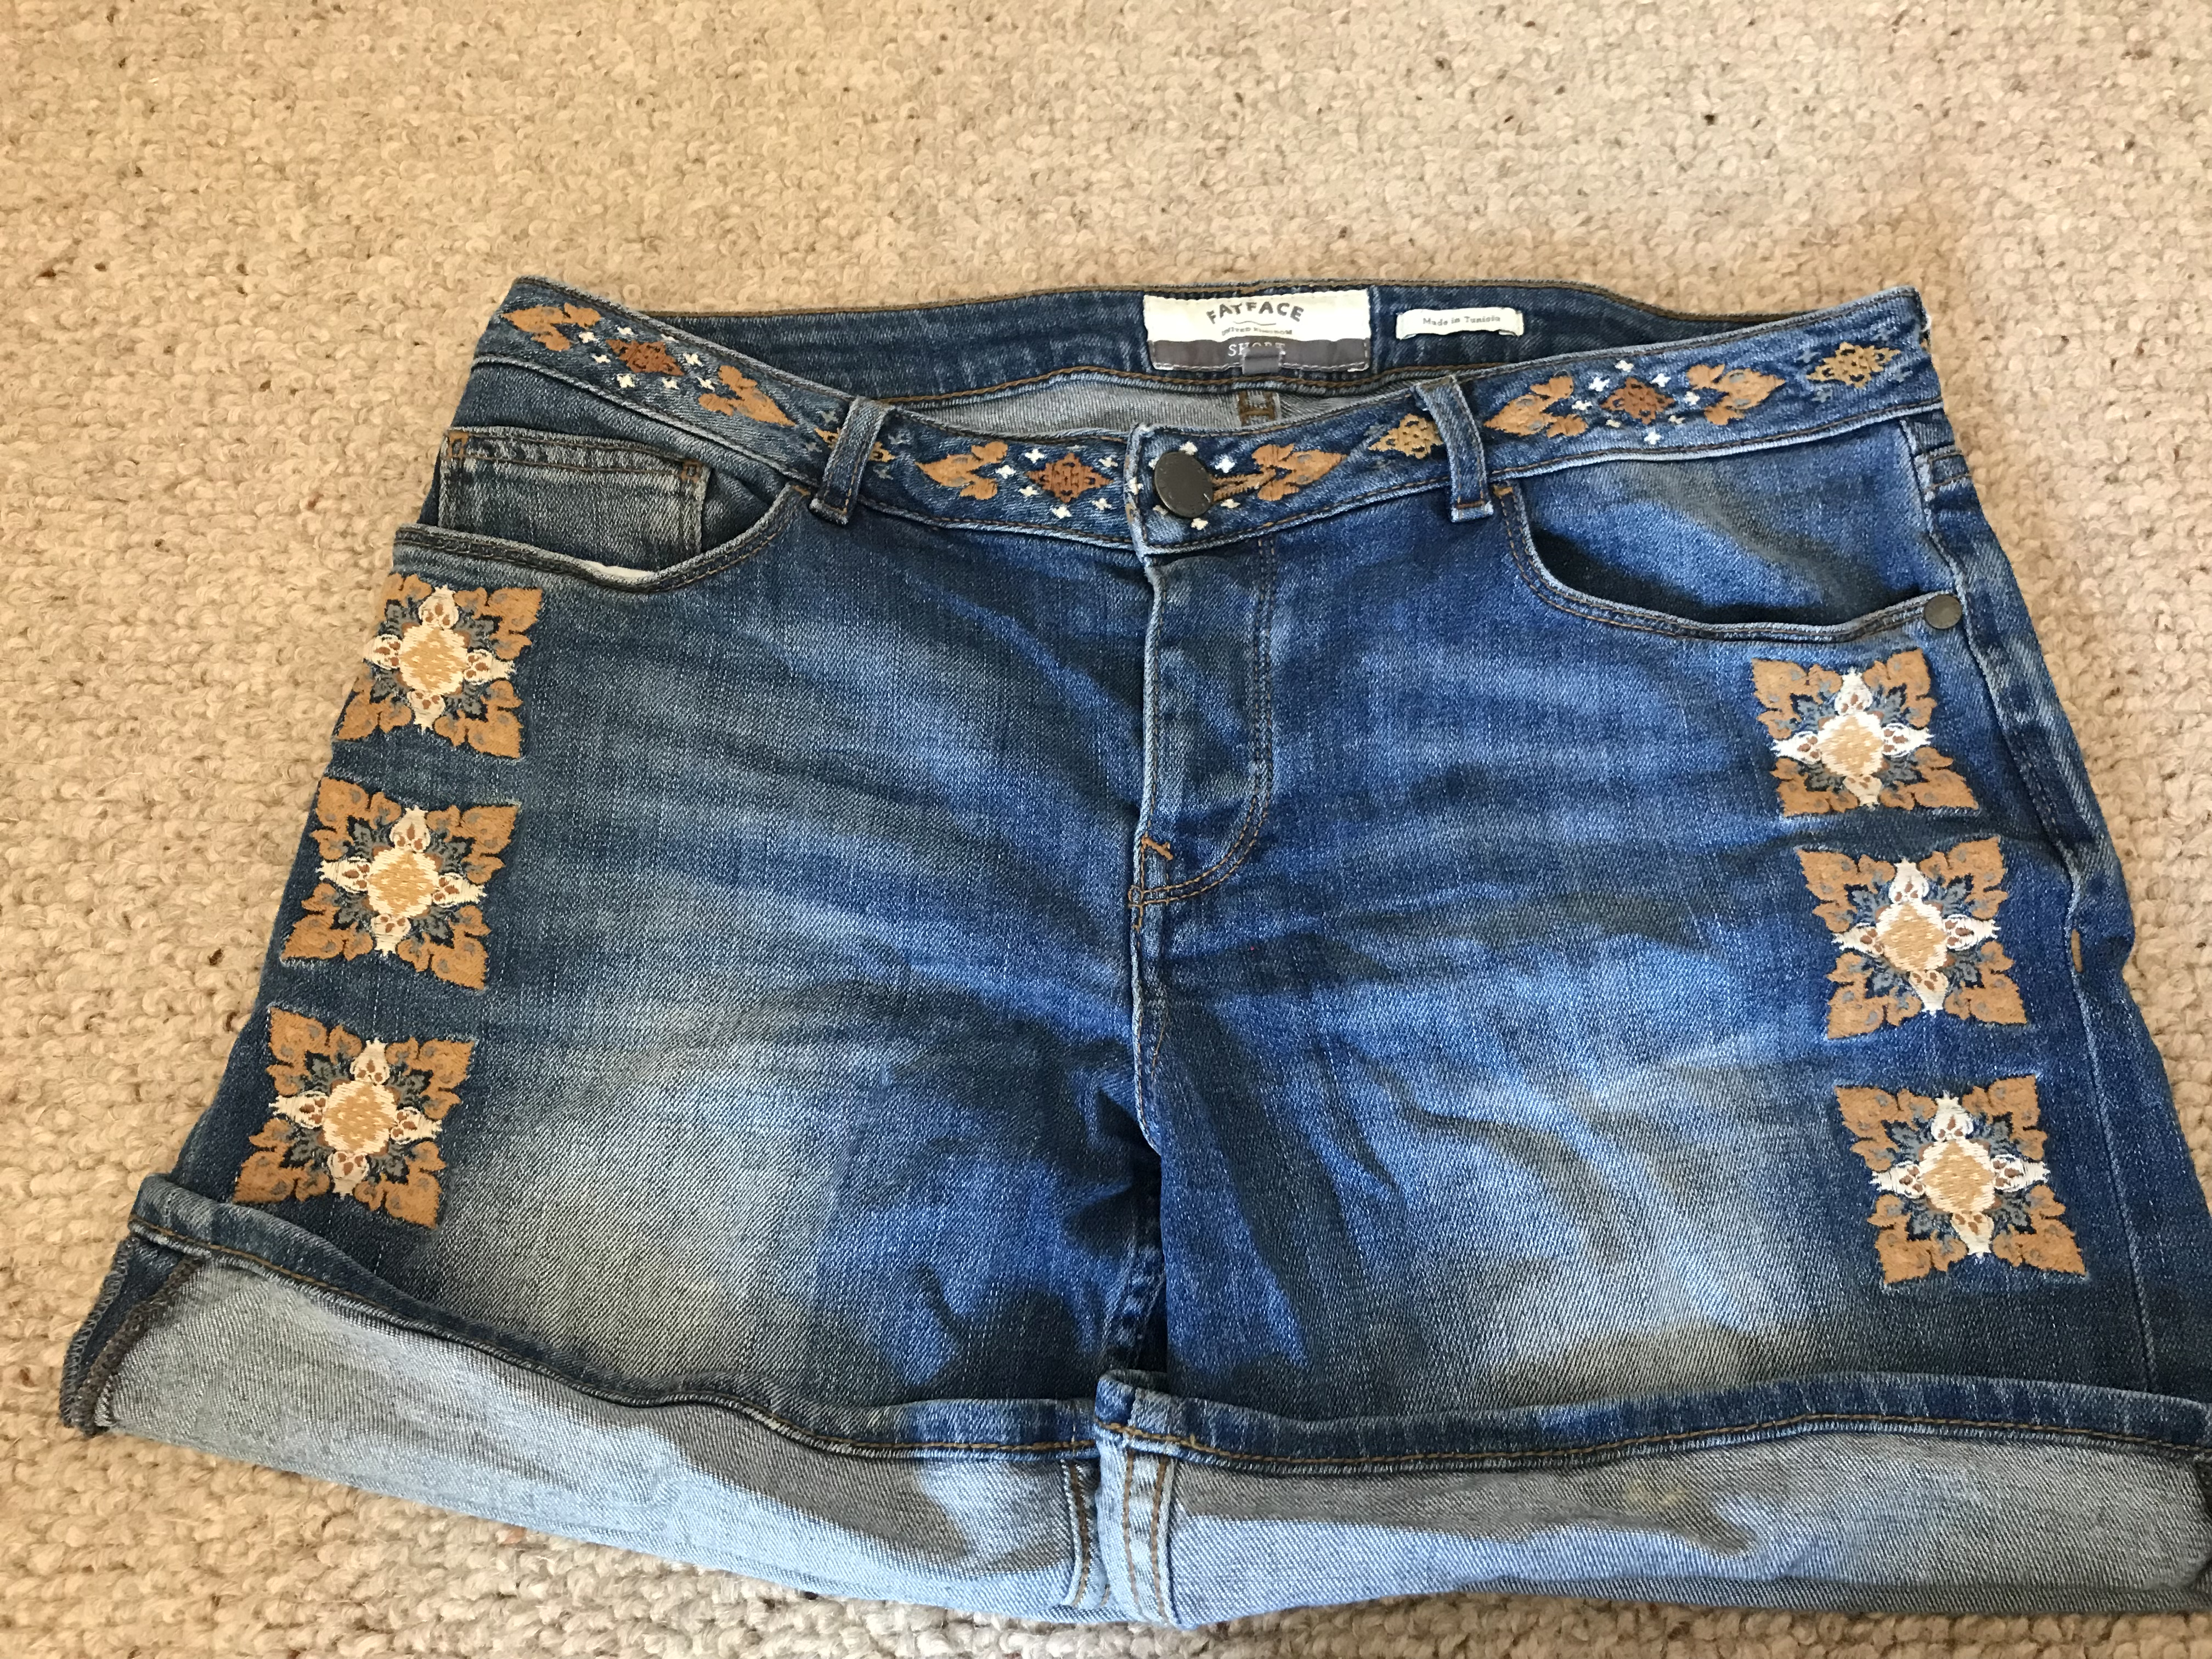 Image of Fatface Size 10 embroidered denim shorts